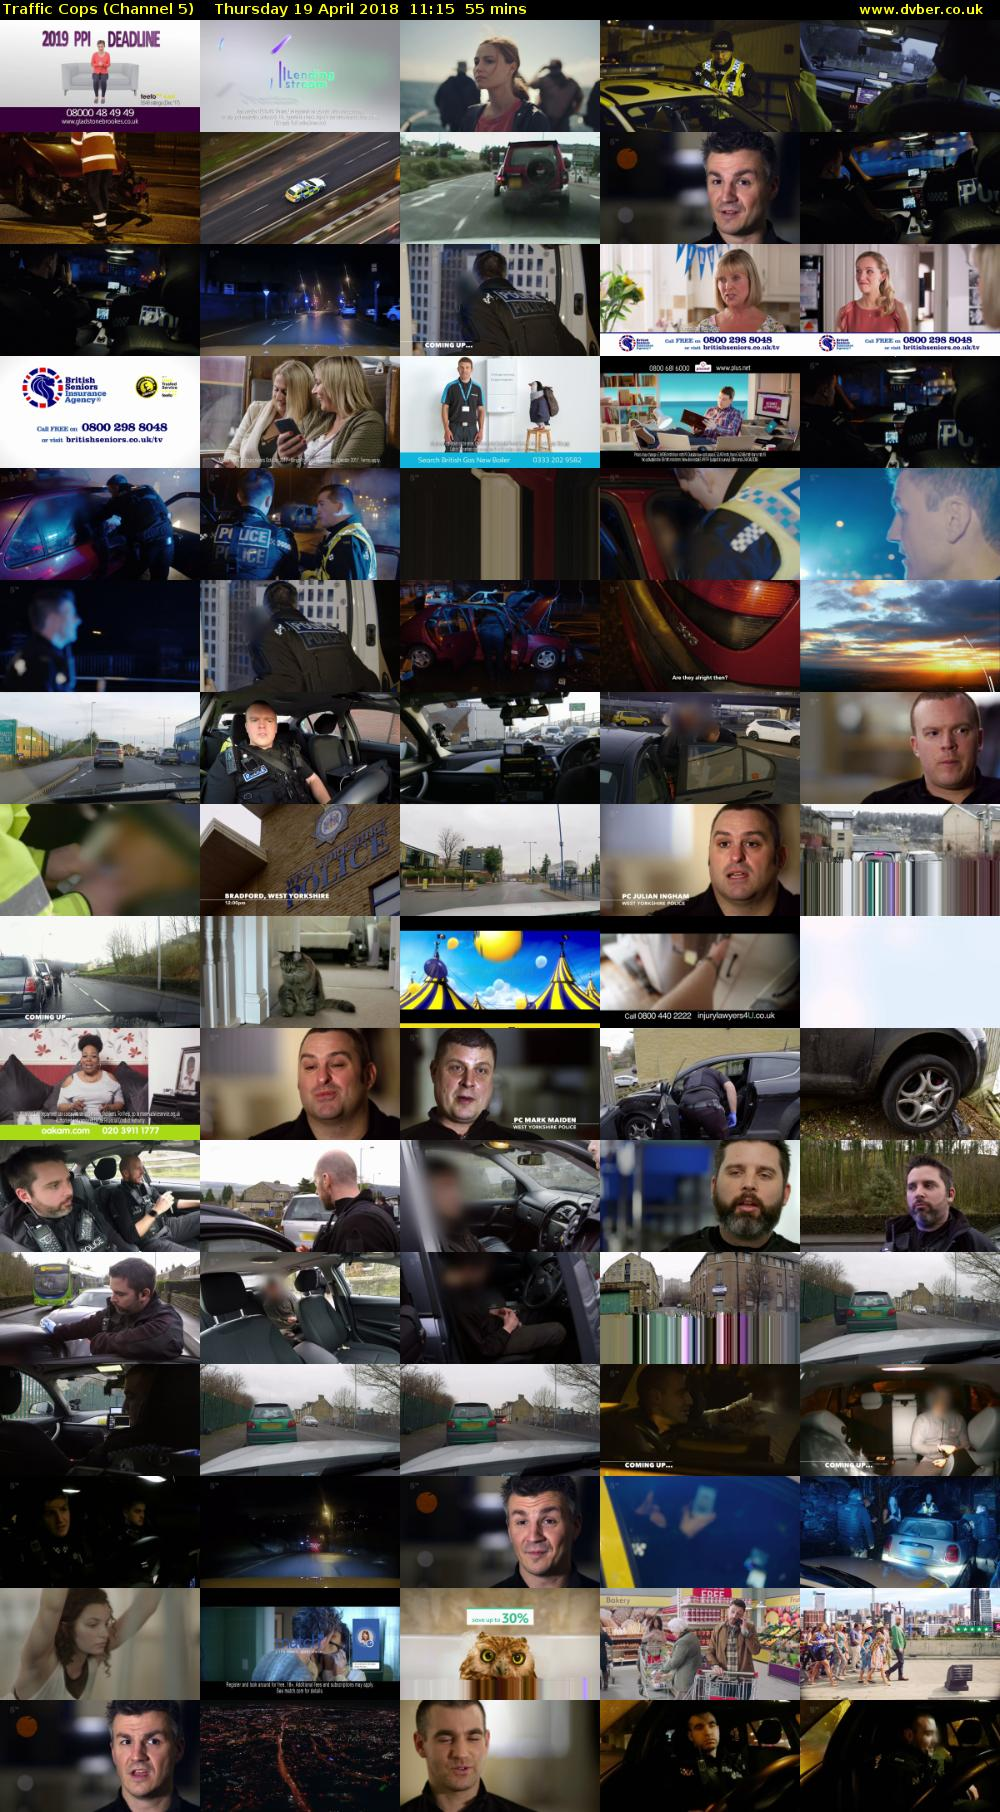 Traffic Cops (Channel 5) Thursday 19 April 2018 11:15 - 12:10